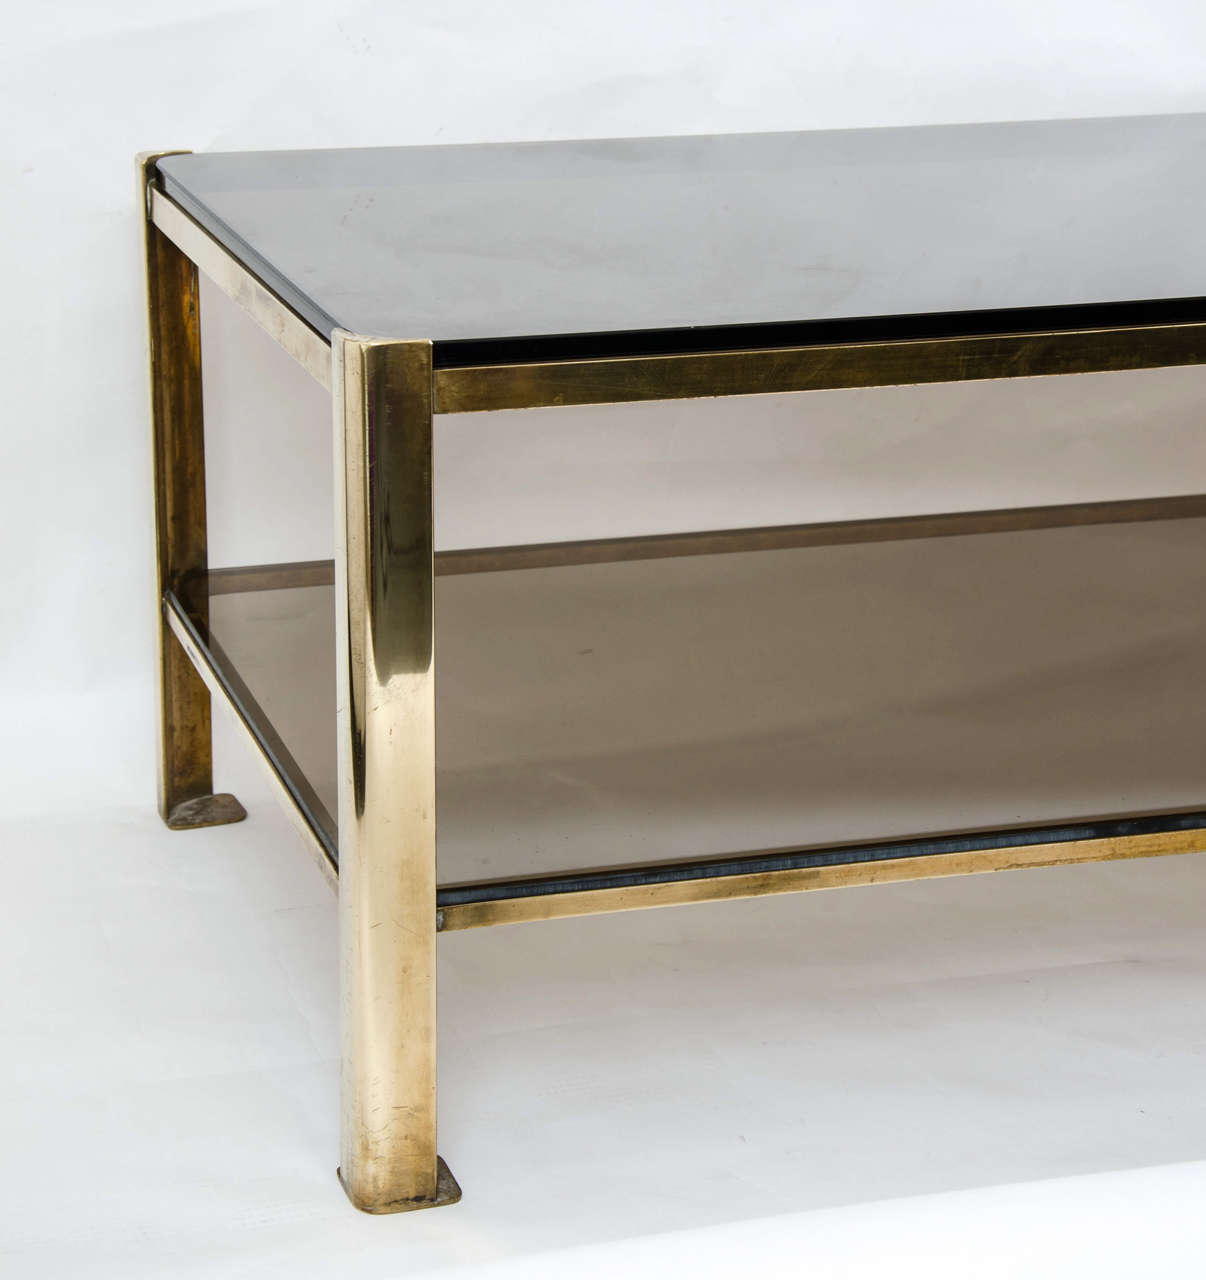 1950s French Jacque Quinet Coffee Table II In Excellent Condition For Sale In London, GB